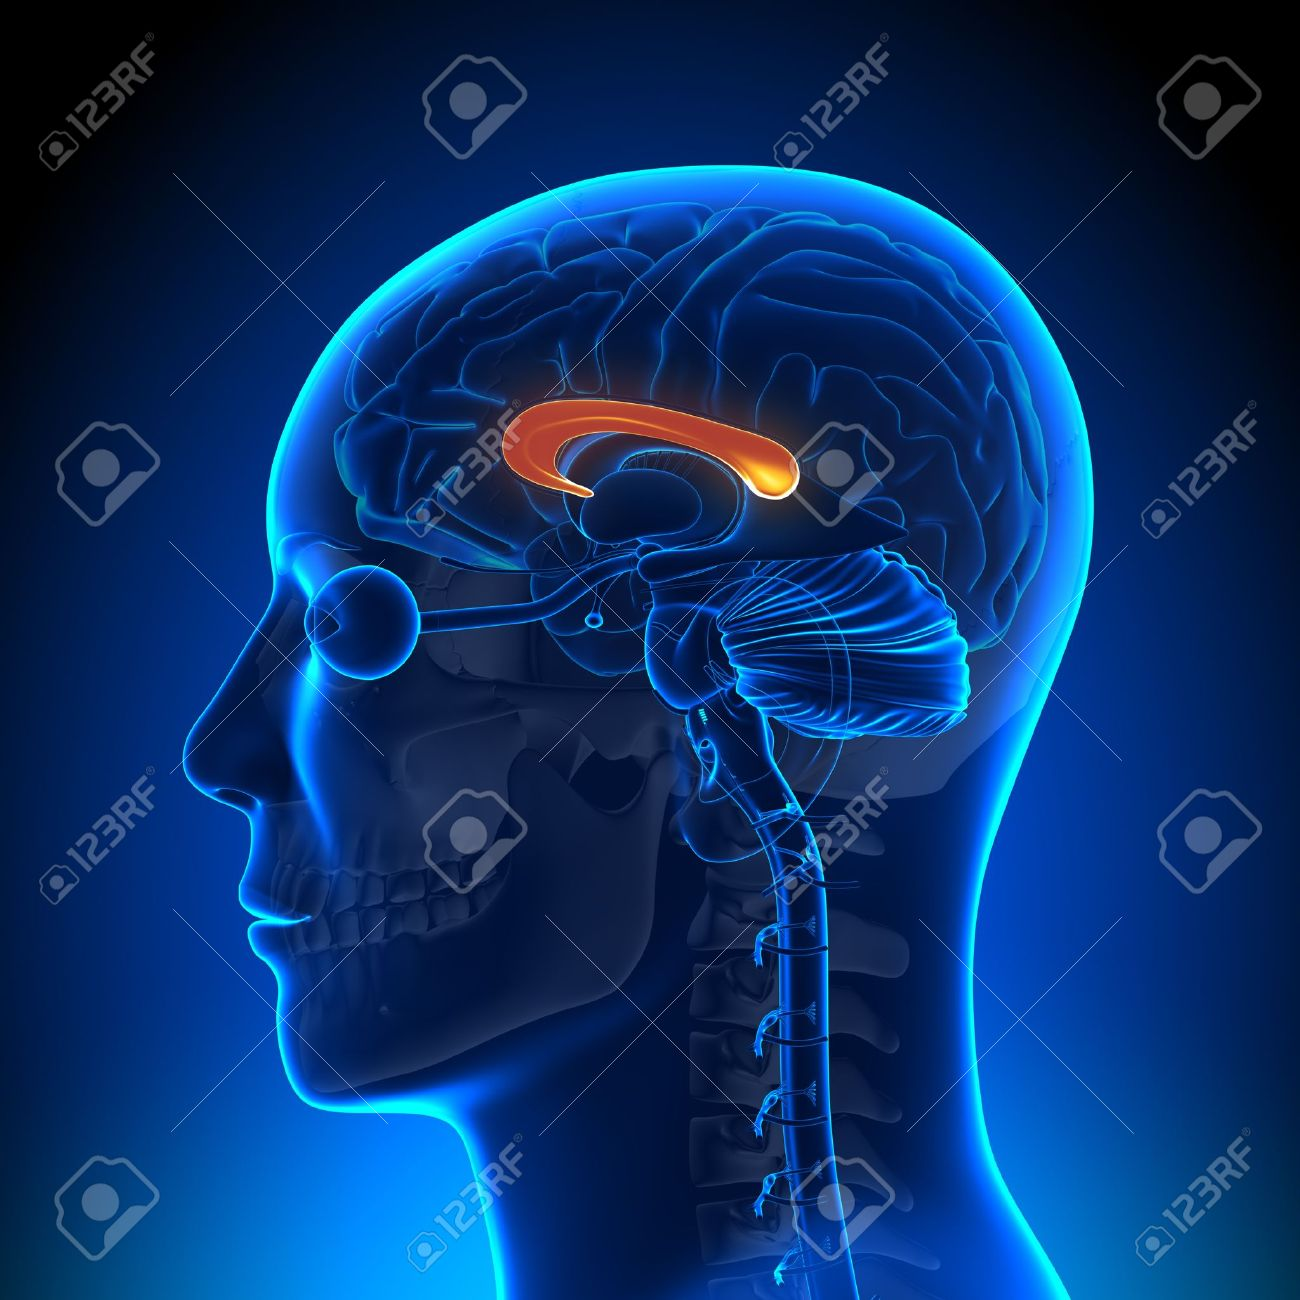 Brain Anatomy Corpus Callosum Stock Photo, Picture And Royalty Free ...